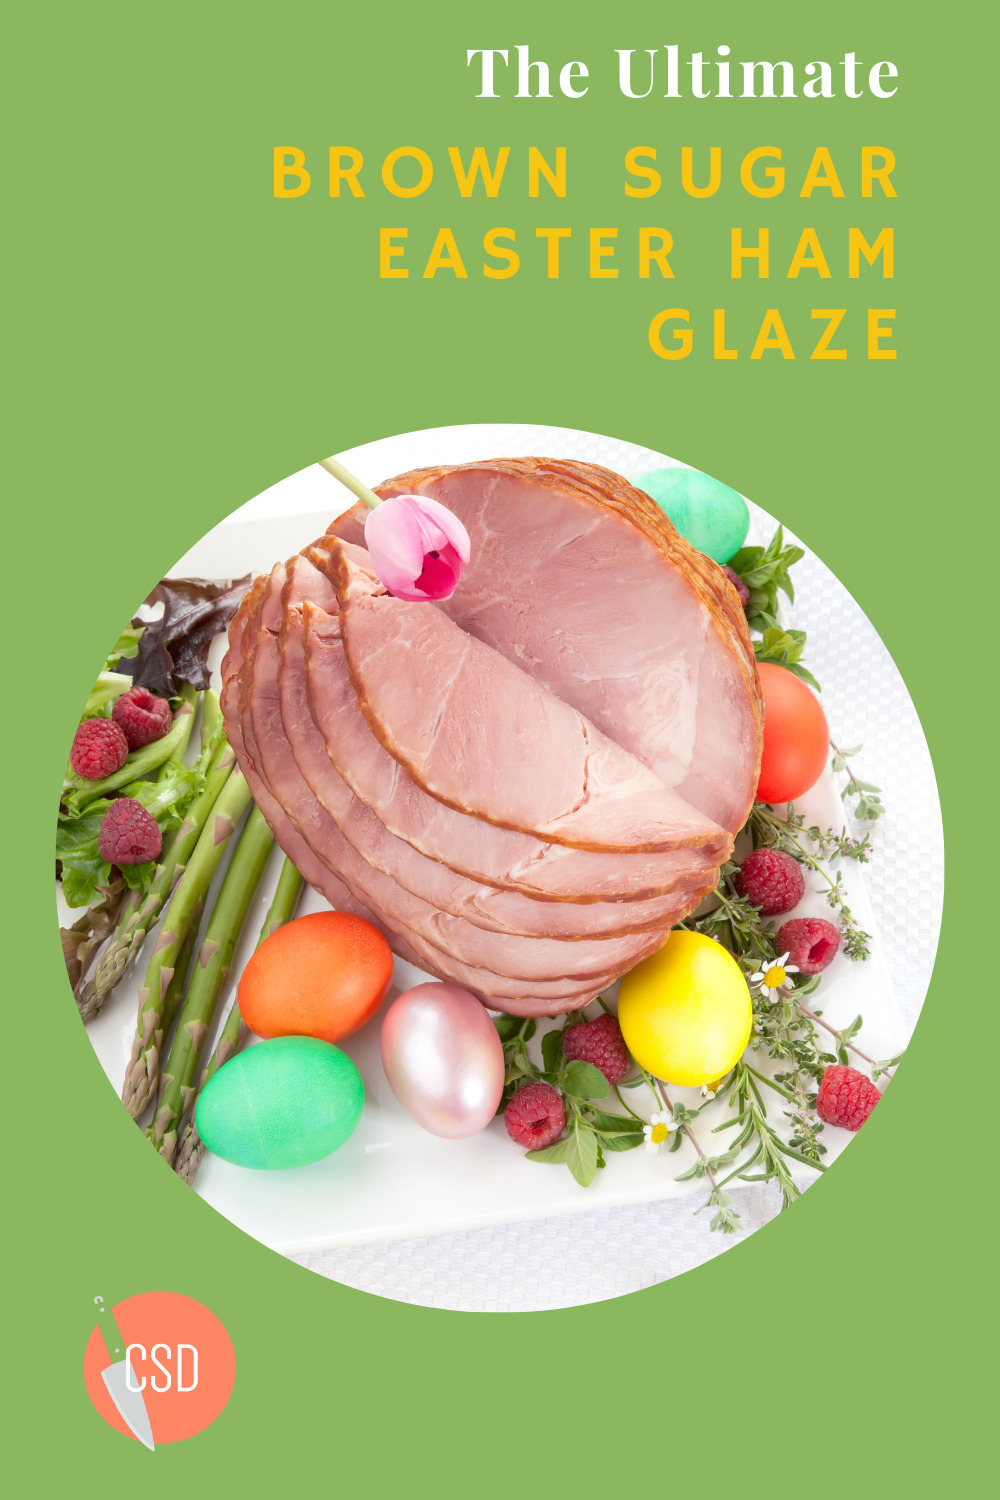 Cutsidedown.com has the best food and drink recipes for any occasion year-round! Find your new staple recipes for the holidays! This Easter, don't miss this deliciously sweet brown sugar ham glaze!